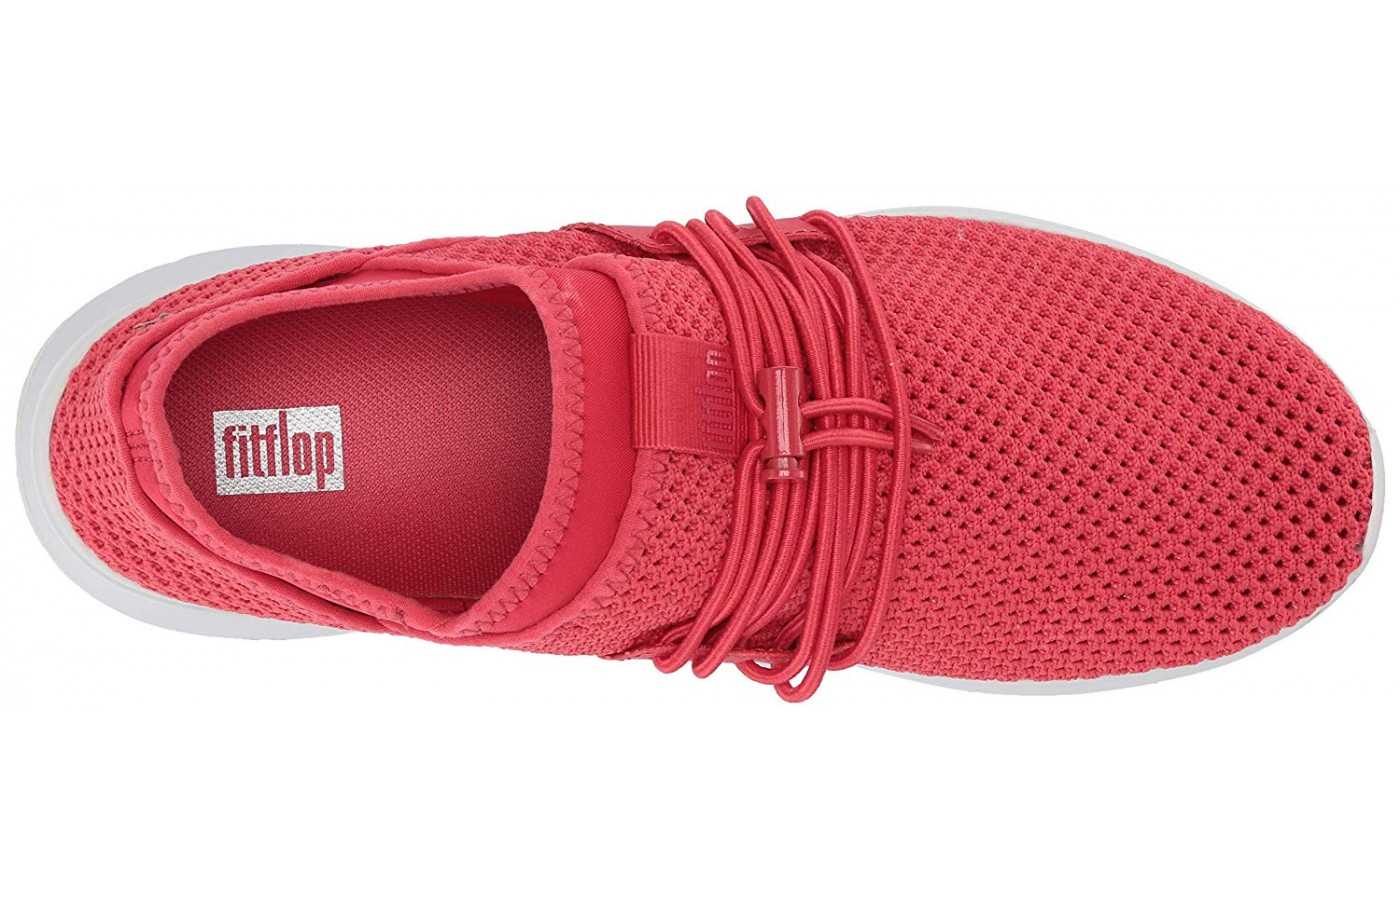 FitFlop Airmesh Lace-Up Upper